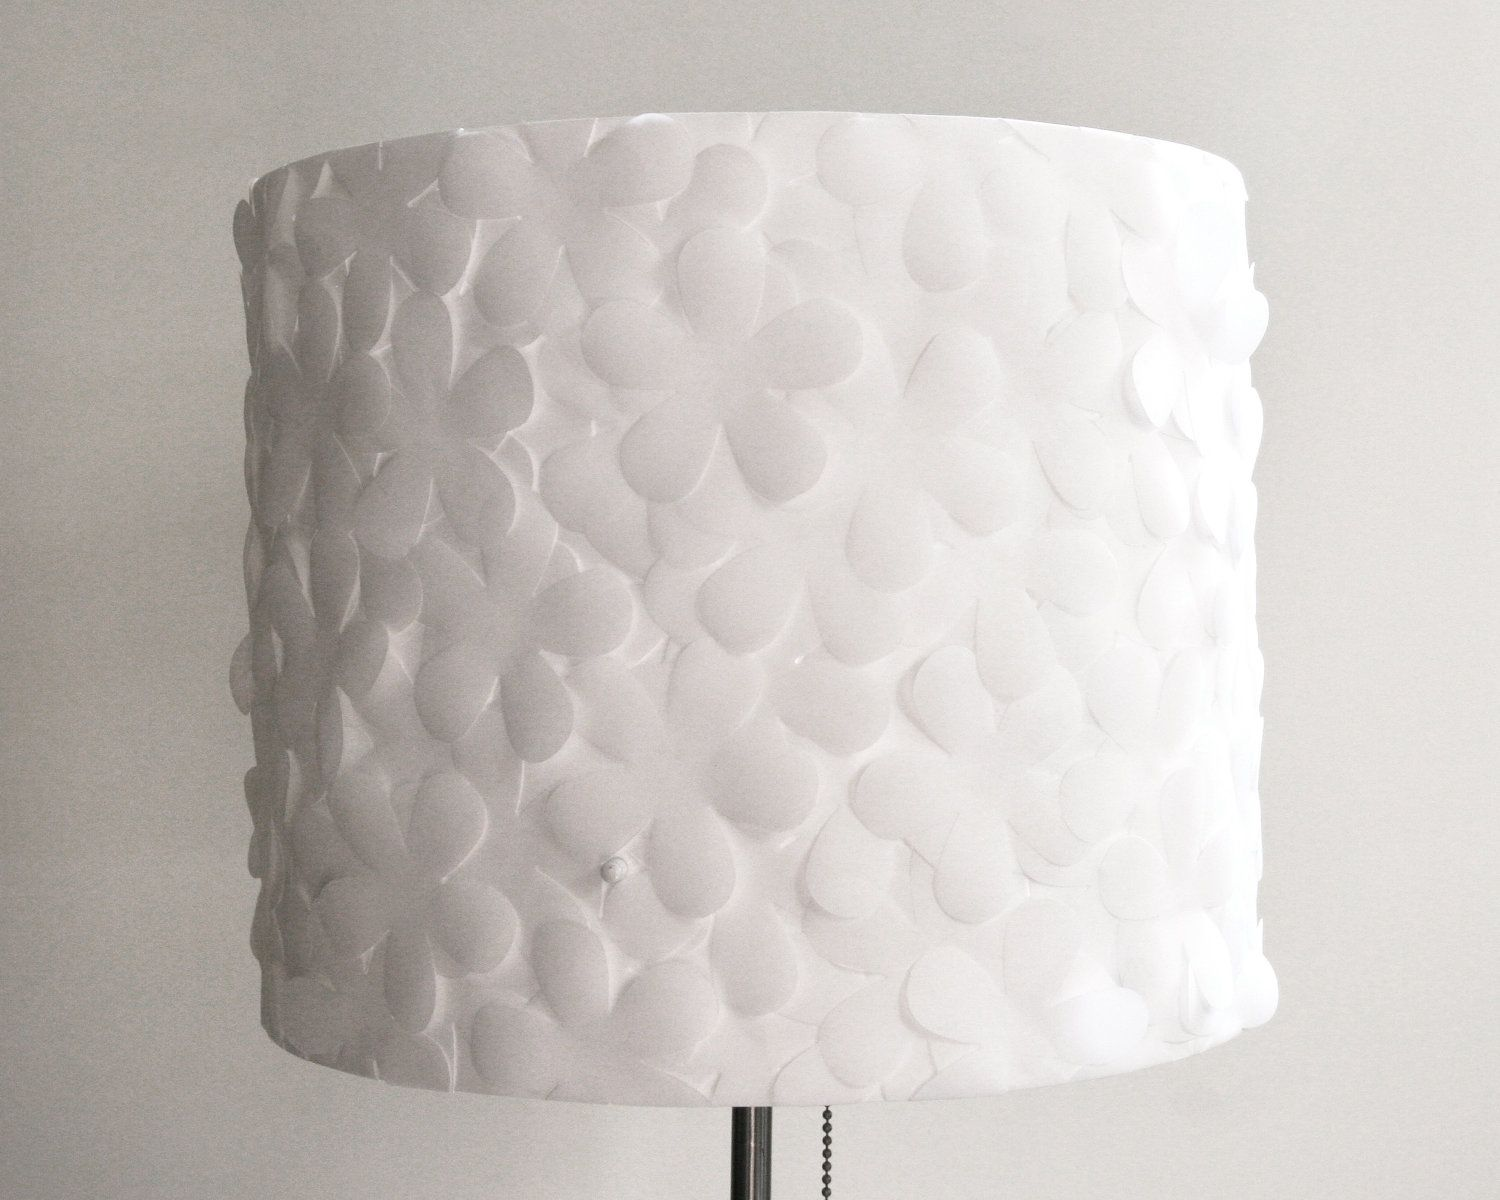 White Flower Lamp Shade Large Drum Shade Only Zipper8lighting Via